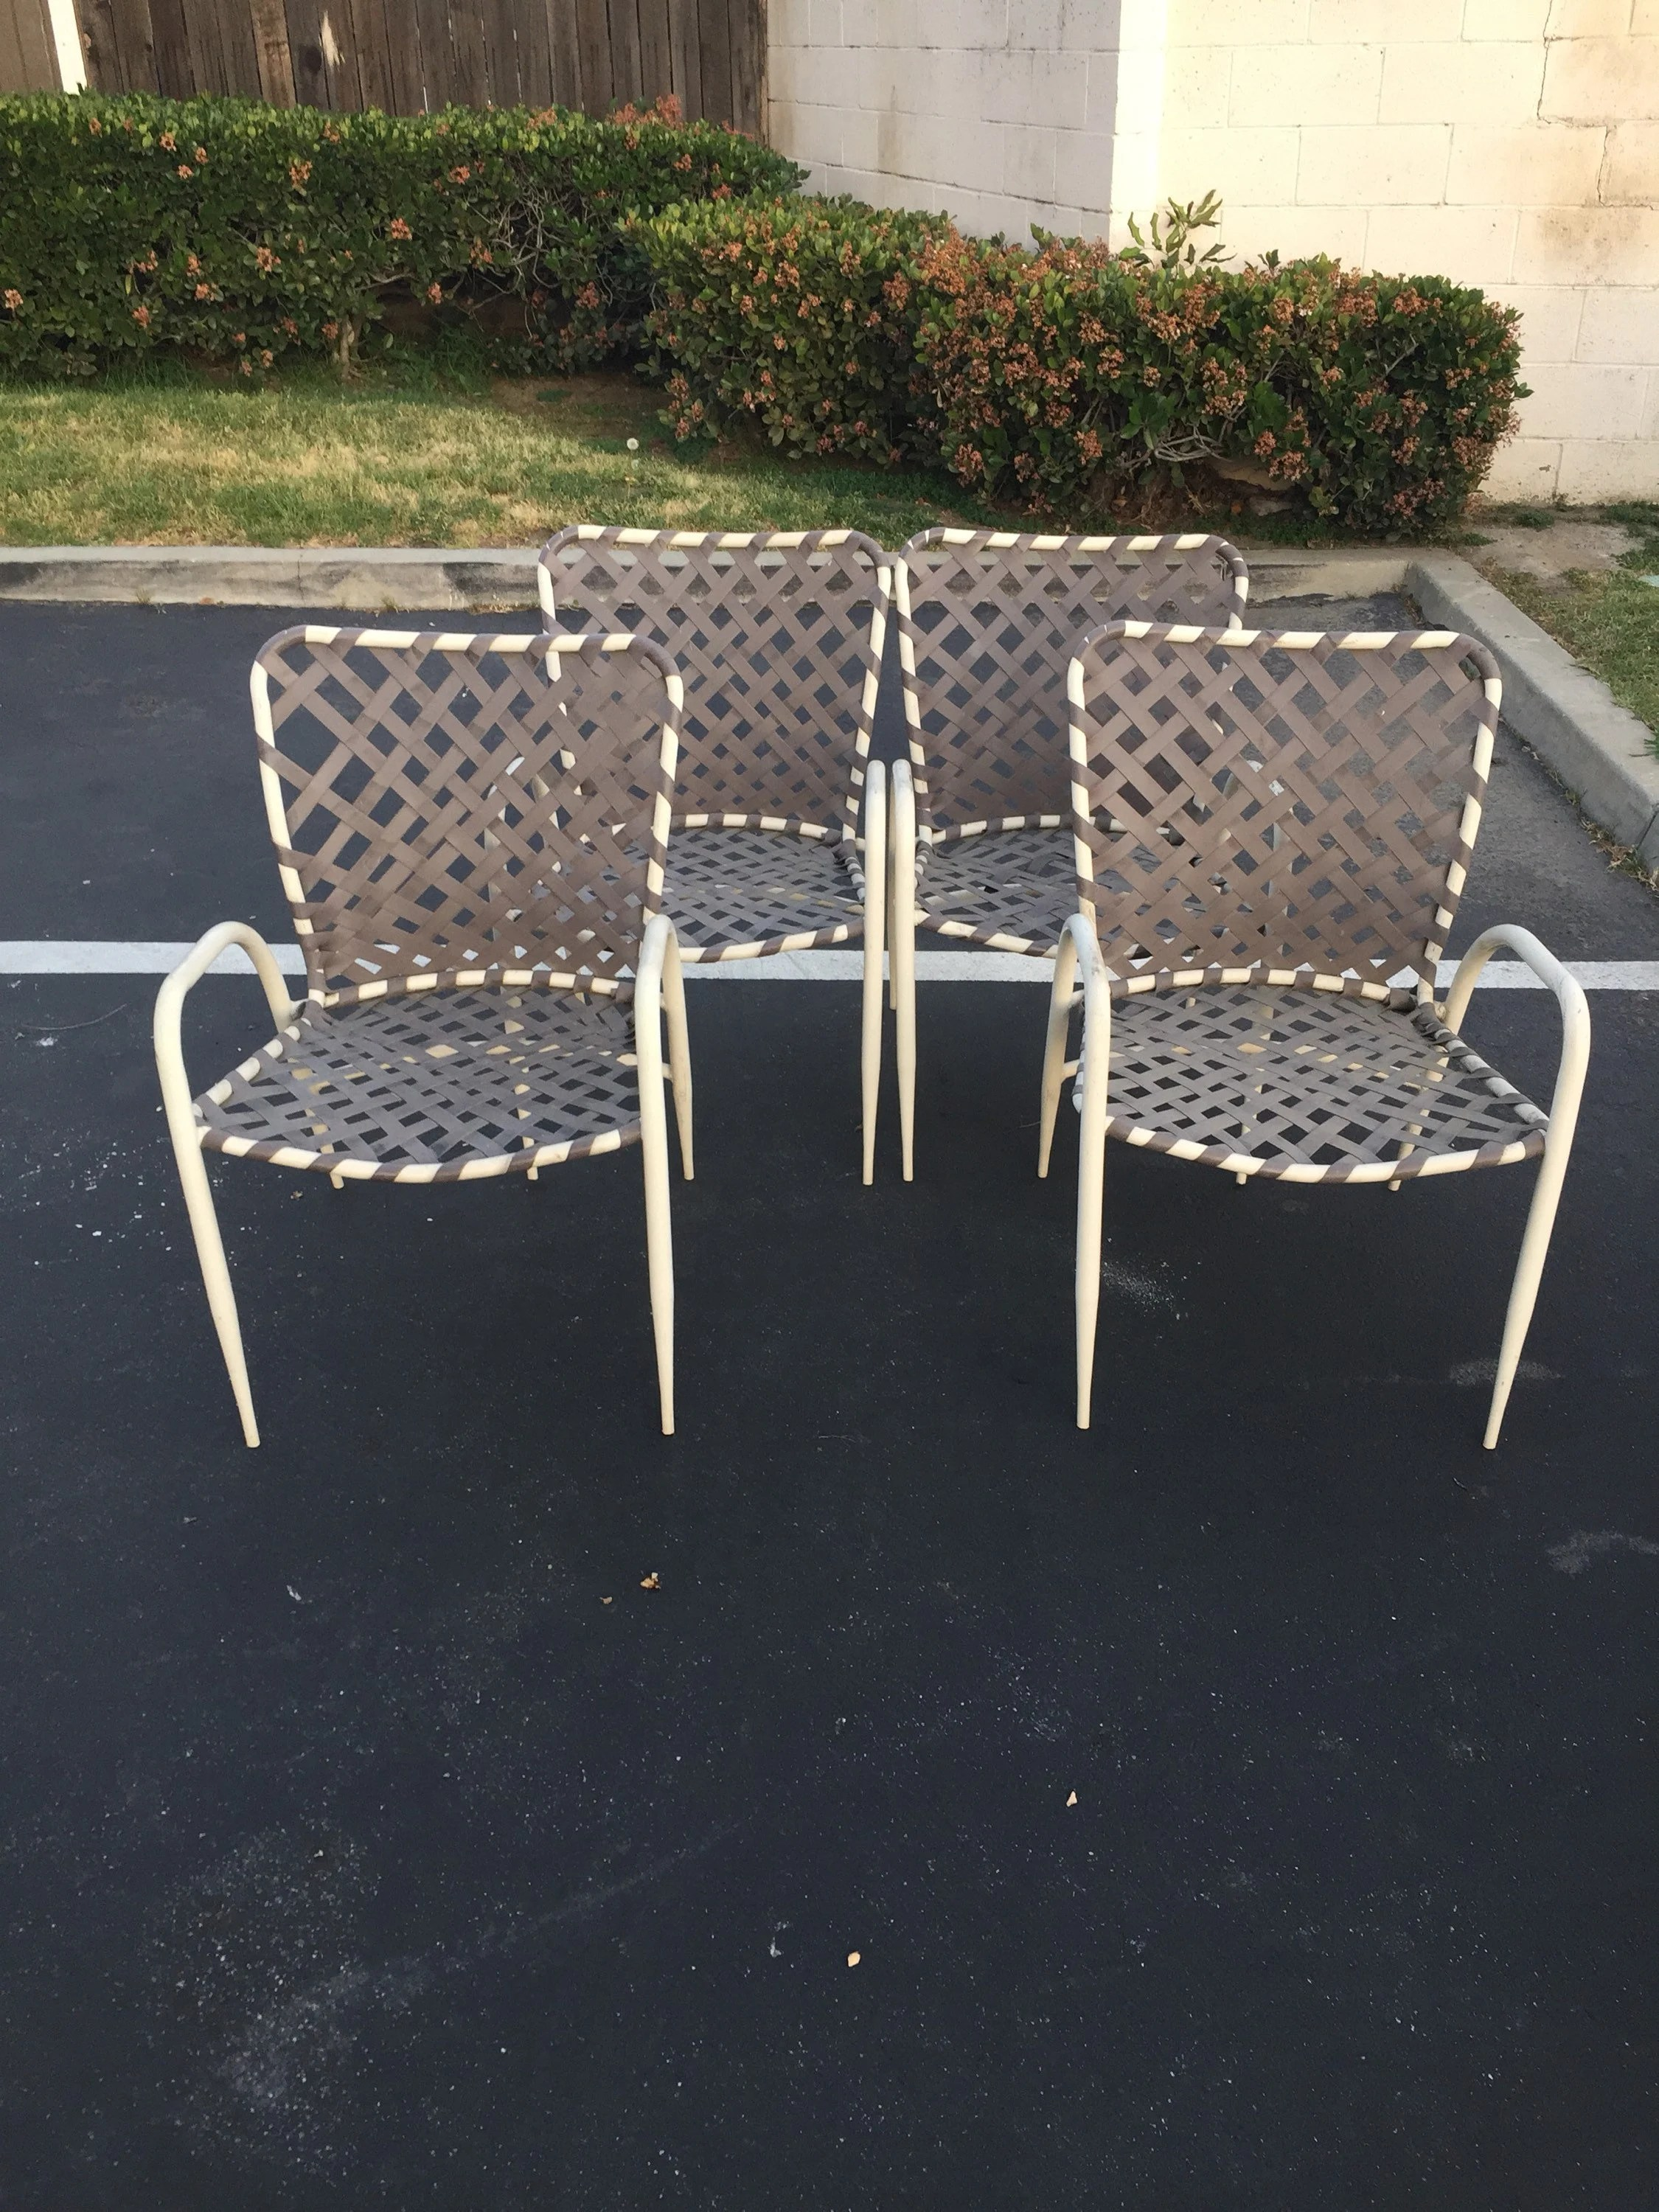 Backyard Chairs Set Of Four 4 Brown Jordan Tamiami Patio Chairs Vintage Garden Chairs Mid Century Modern Backyard Chairs Outdoor Chairs Mcm Lawn Chair